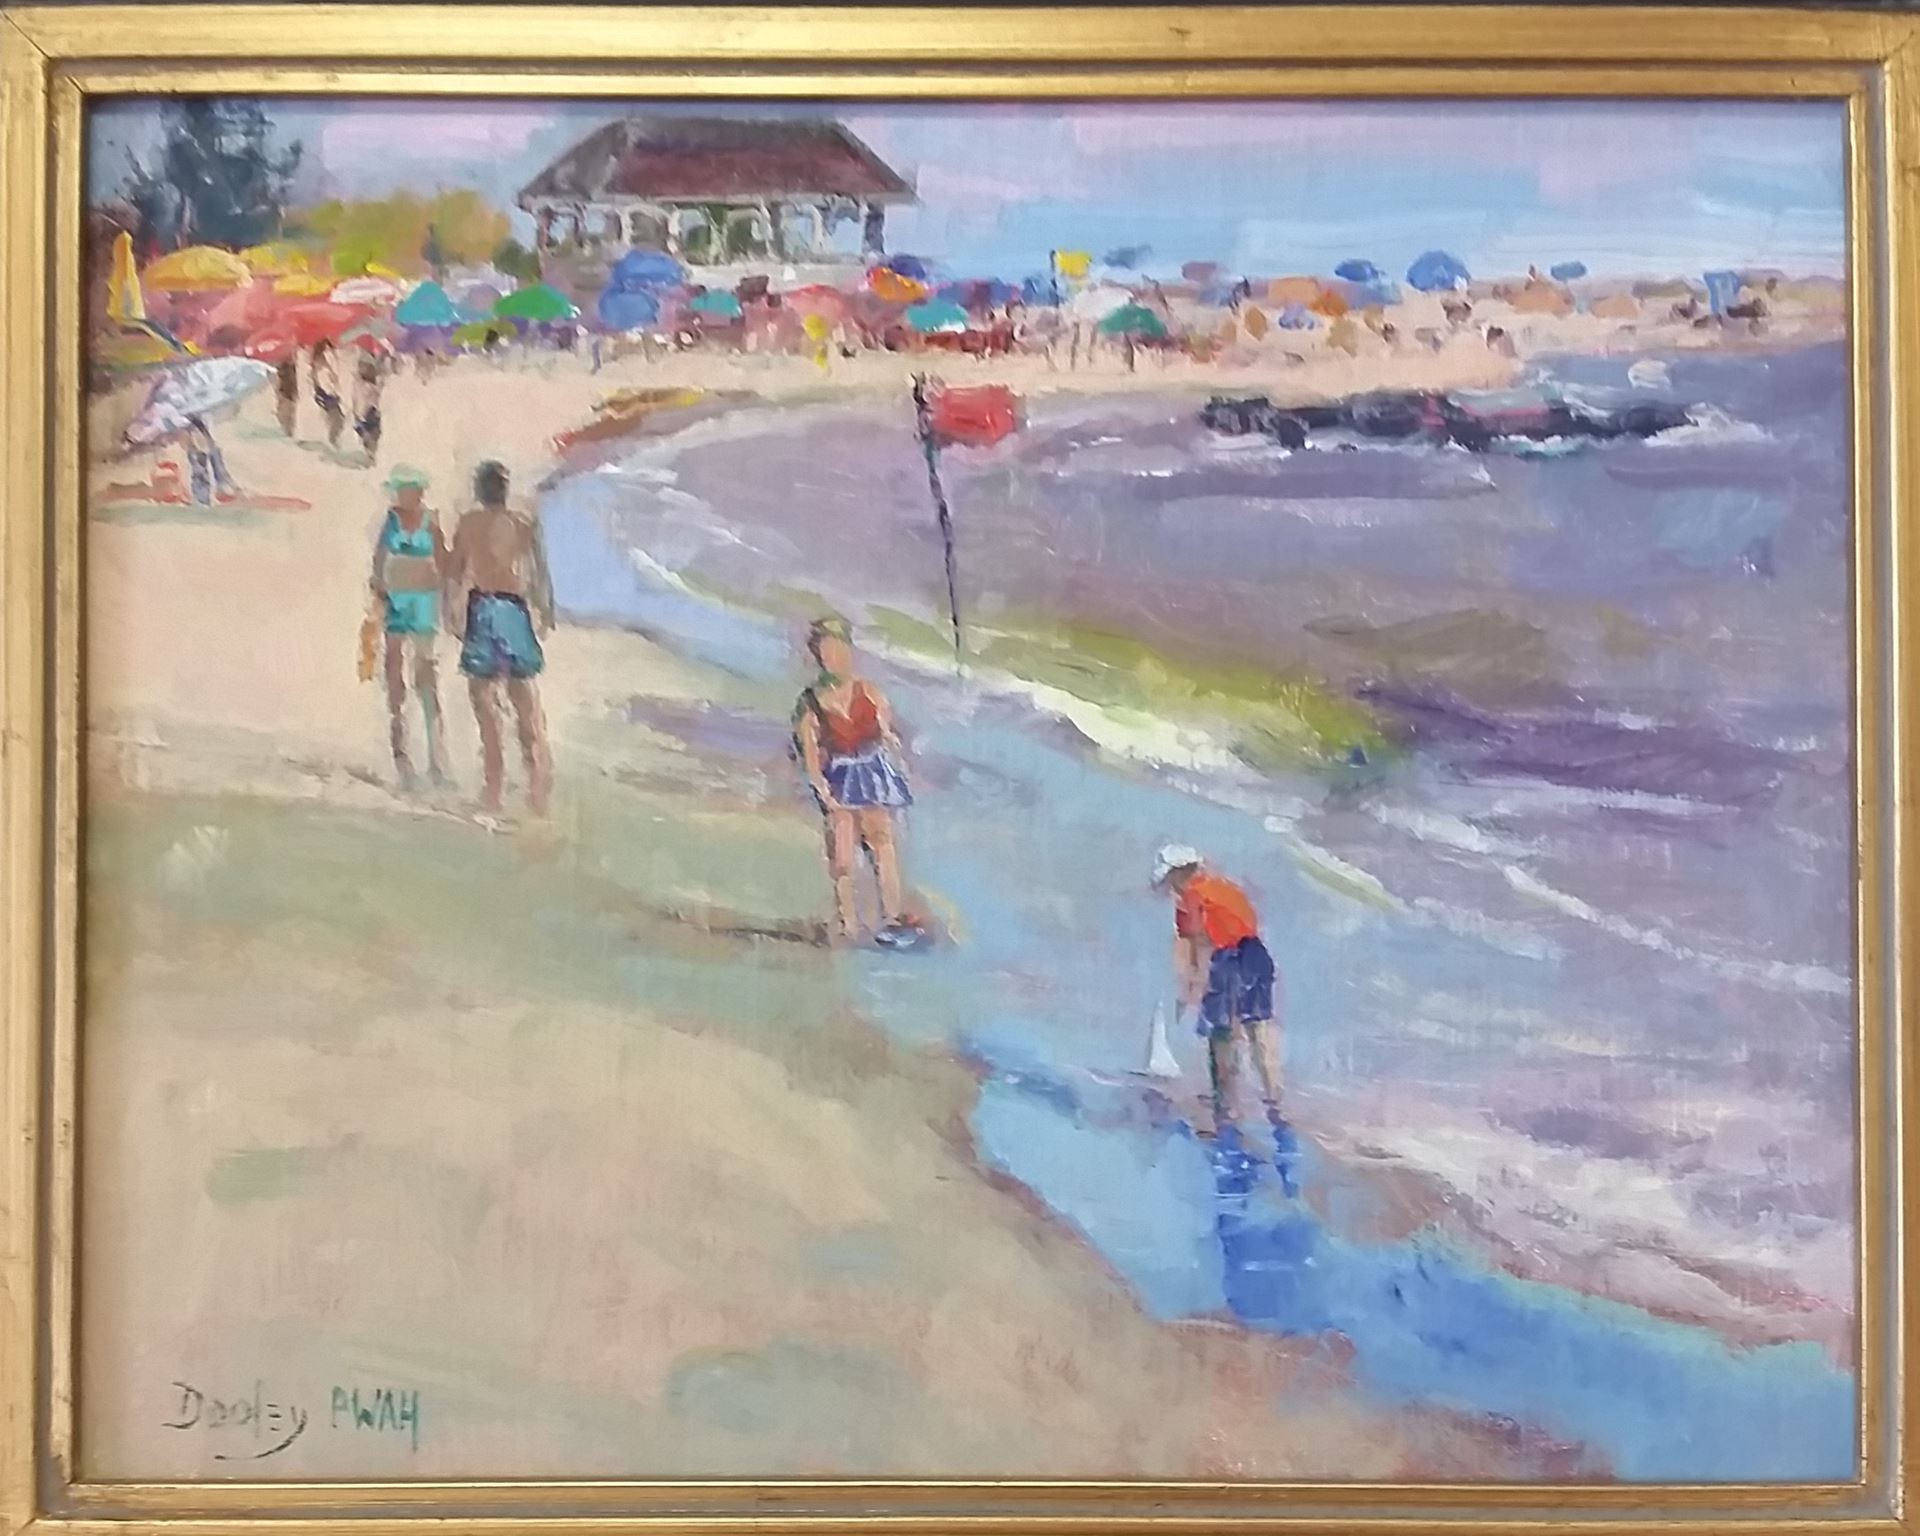 Visions of New Jersey. At The Beach in September by Ramona Dooley